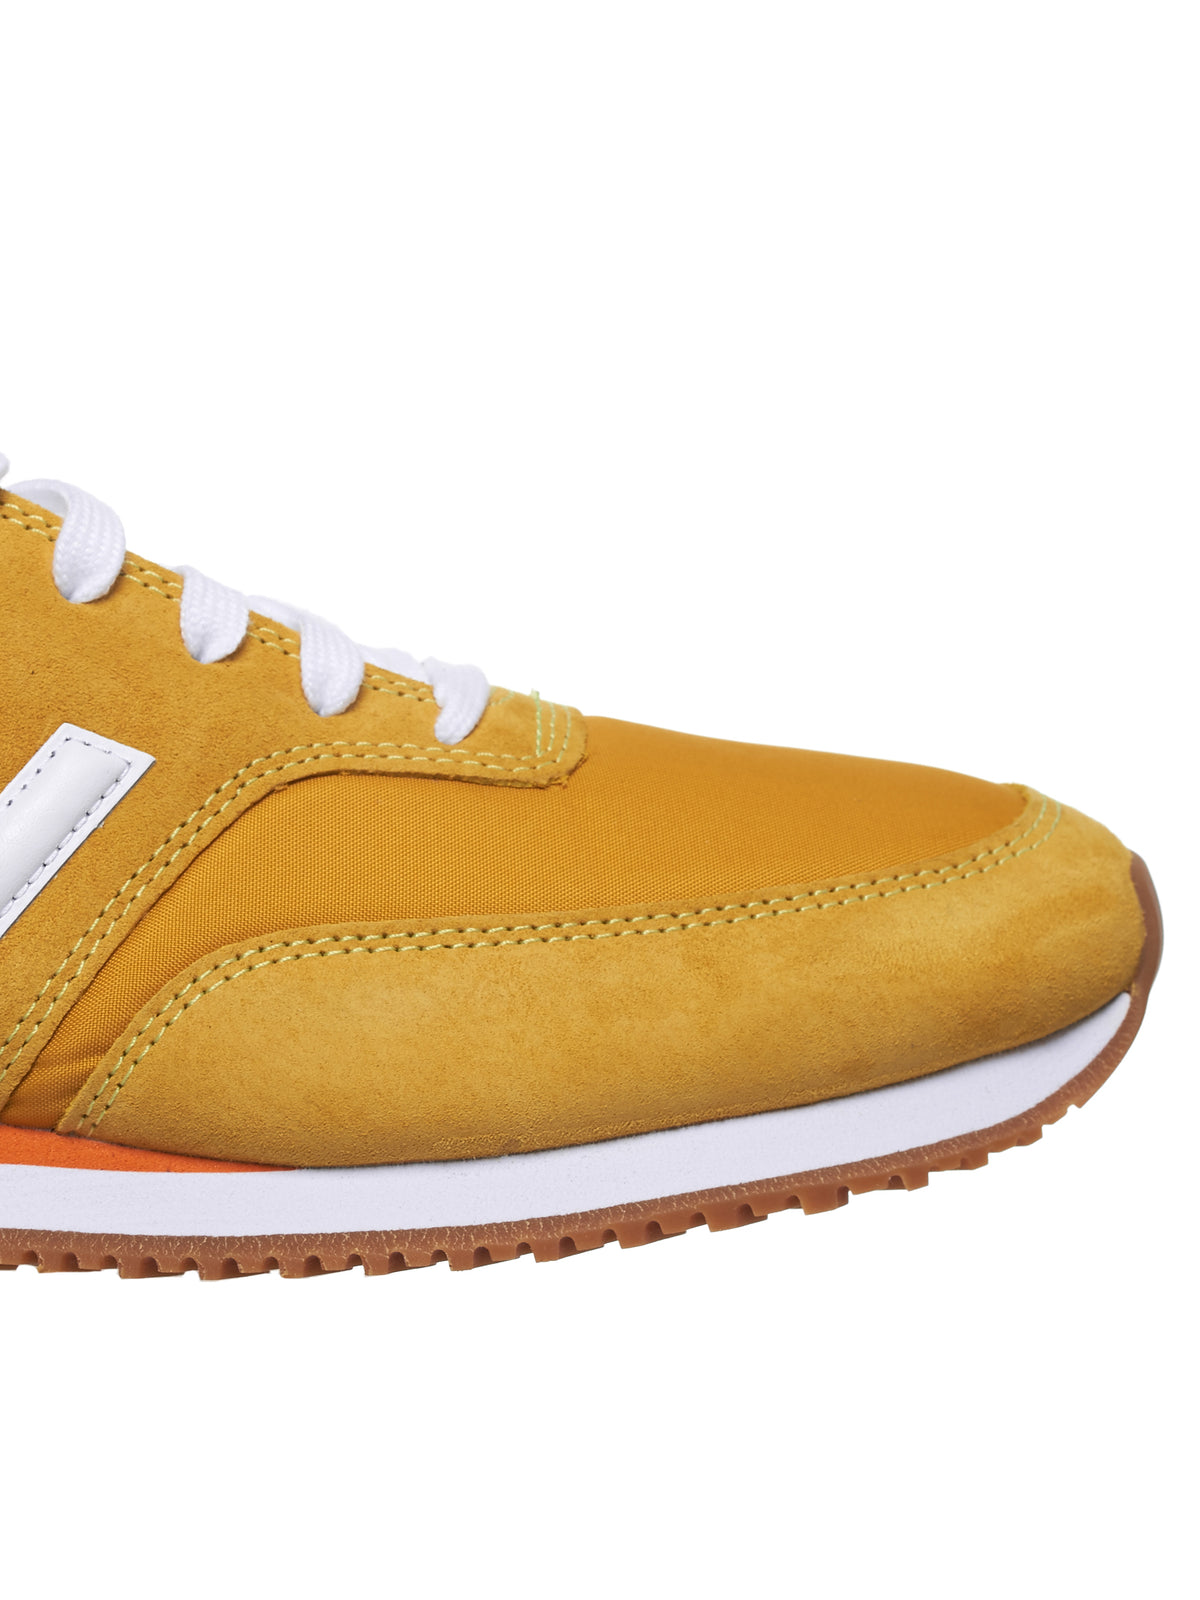 New Balance Edition COMP 100 Sneakers (WE-K103-051-YELLOW)